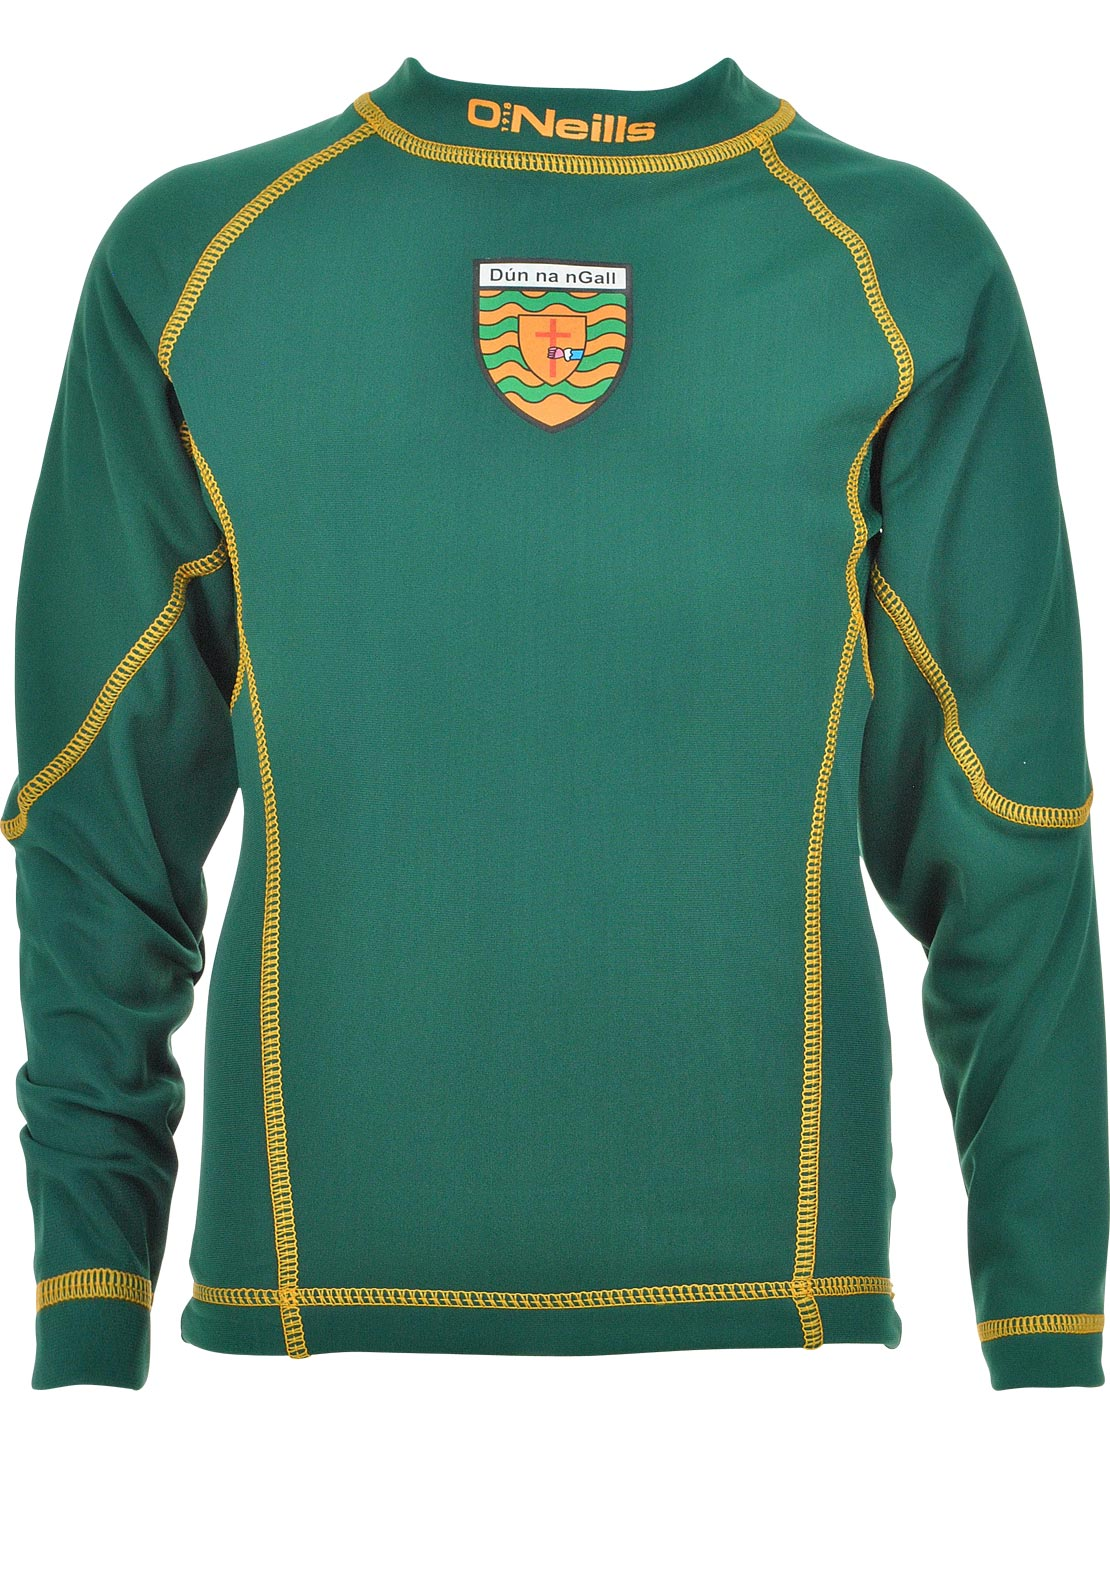 O'Neill's Adults GAA Body Warmer Donegal Training Top, Green